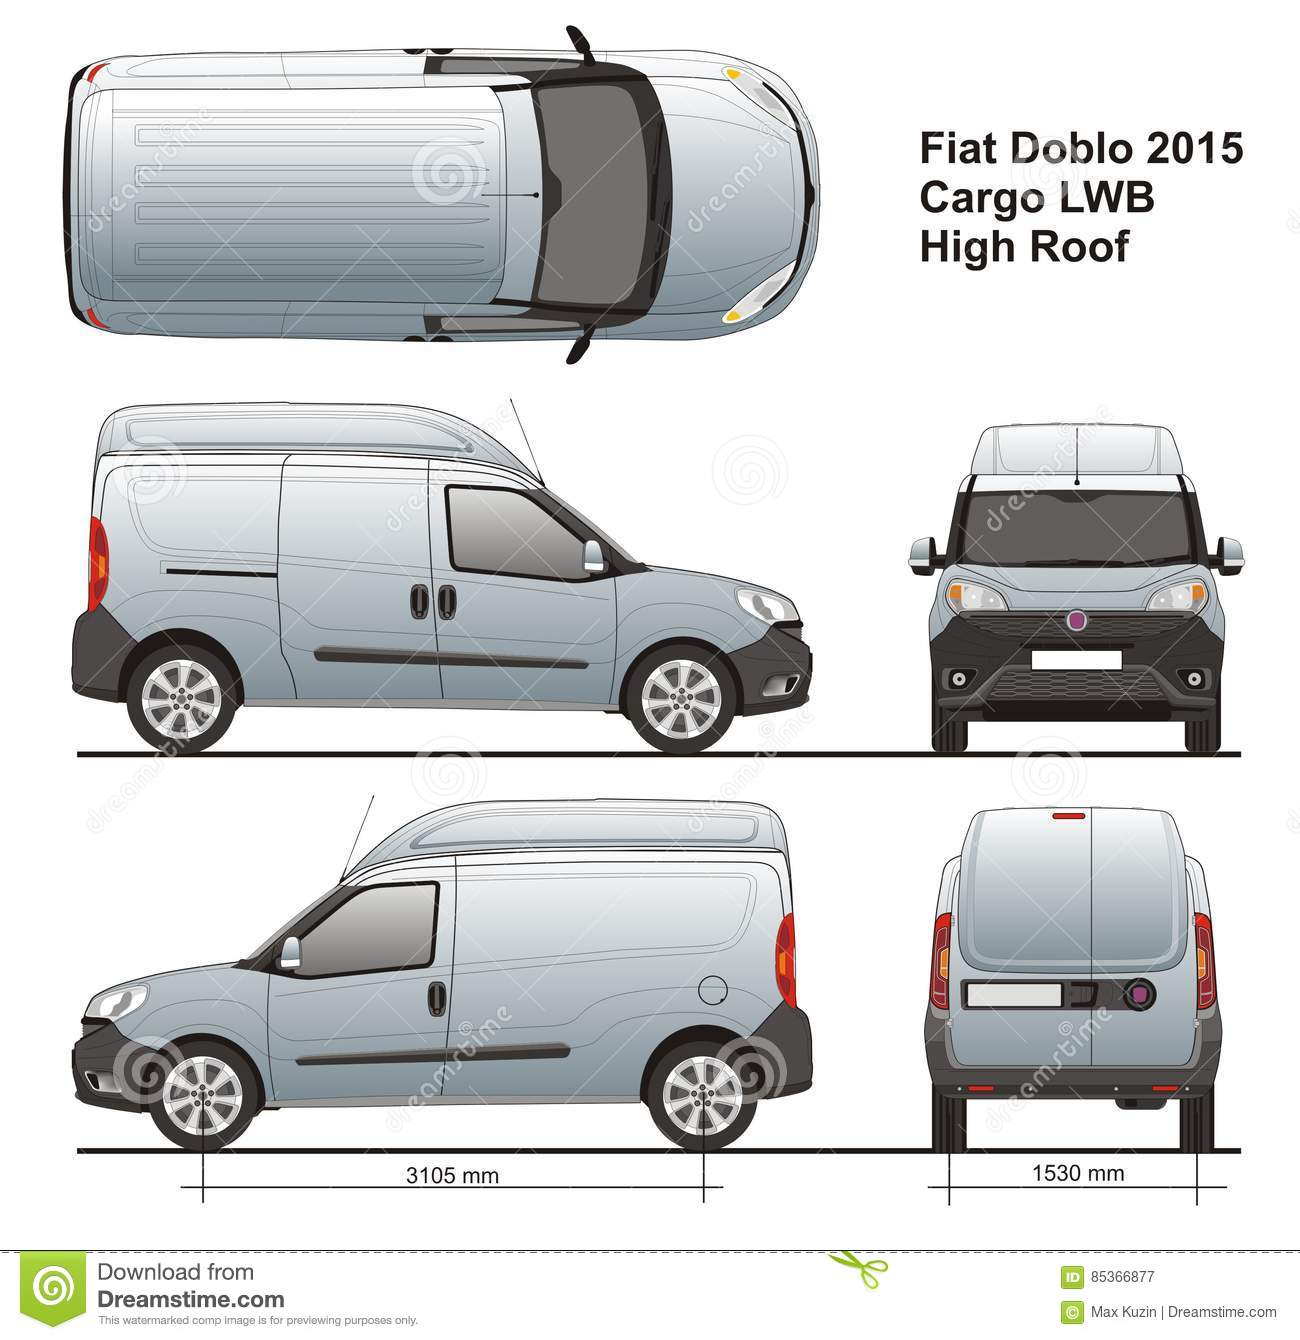 fiat doblo maxi cargo high roof 2015 editorial photography